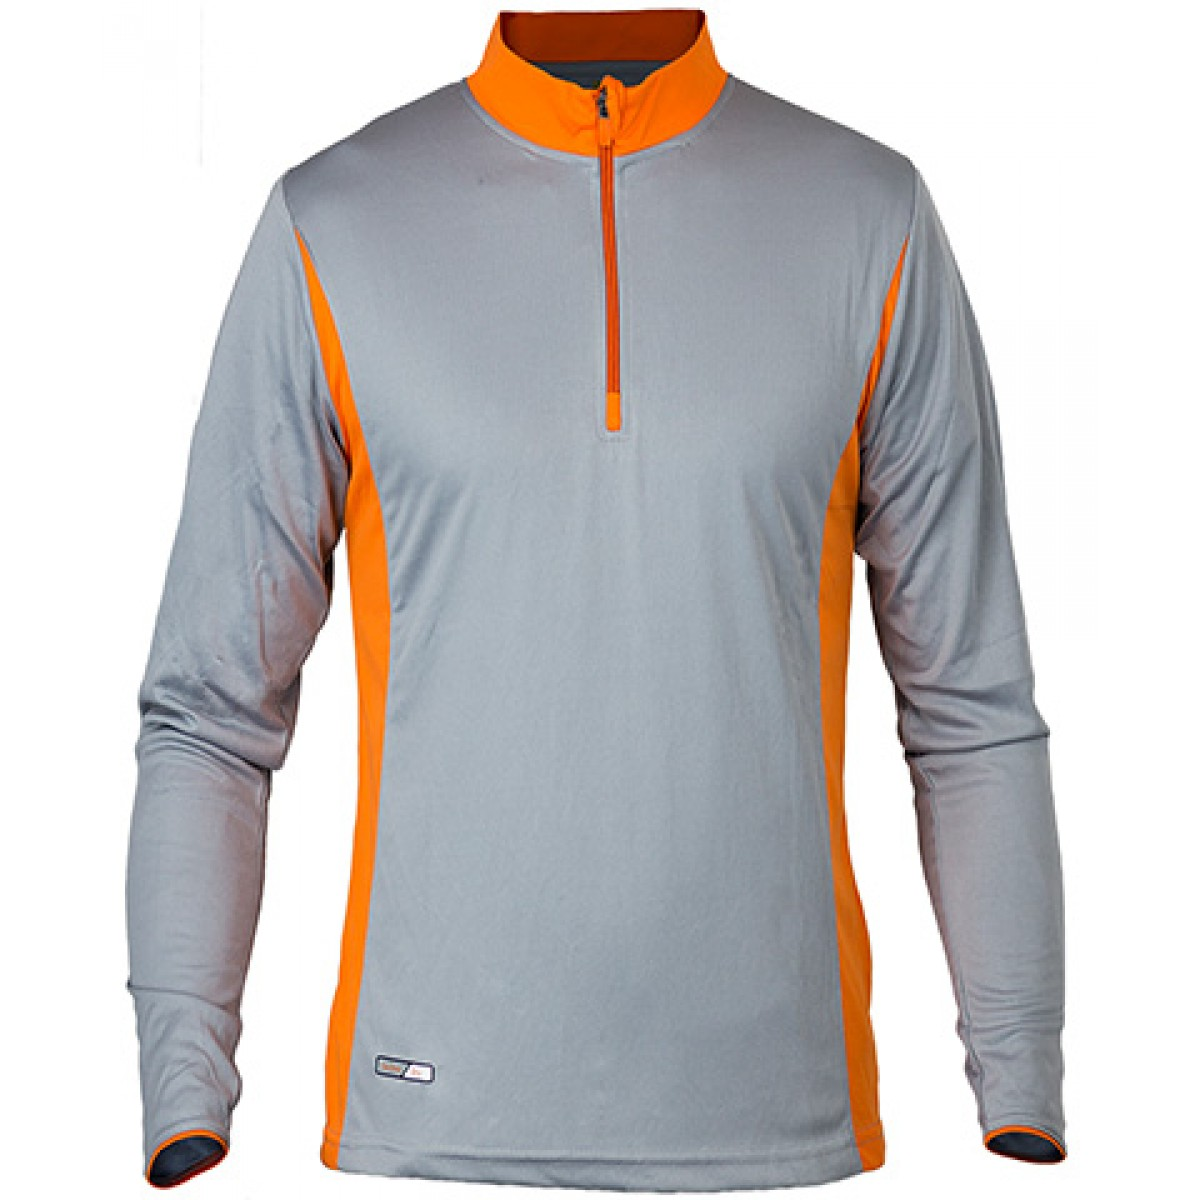 Long Sleeves 3/4 Zip Performance With Side Insert-Neon Orange -S